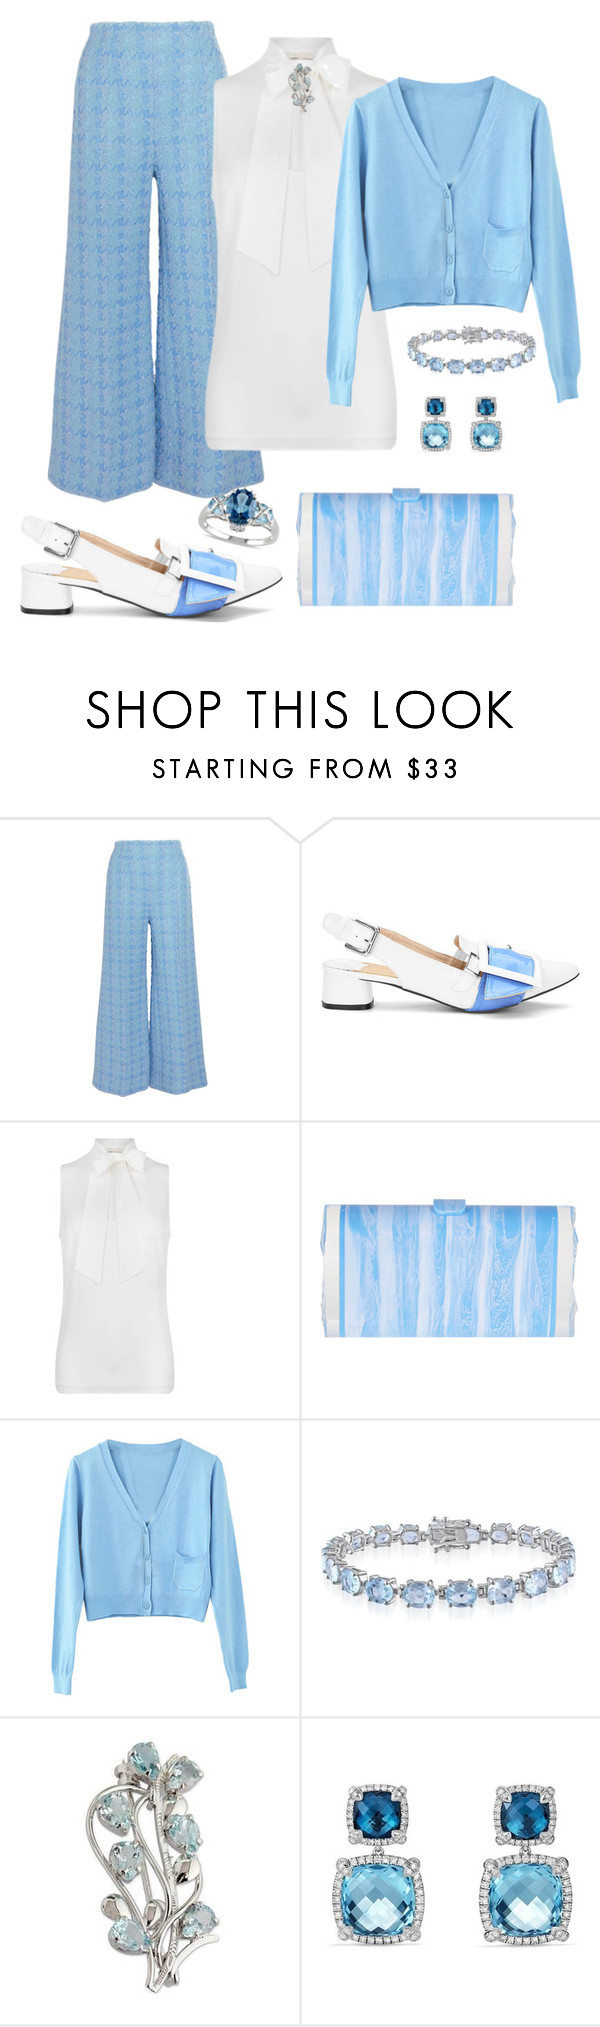 """""""Sky"""" by sommer-reign ❤ liked on Polyvore featuring Emilia Wickstead, MICHAEL Michael Kors, Edie Parker, WithChic, Belk & Co., NOVICA, David Yurman and Allurez"""